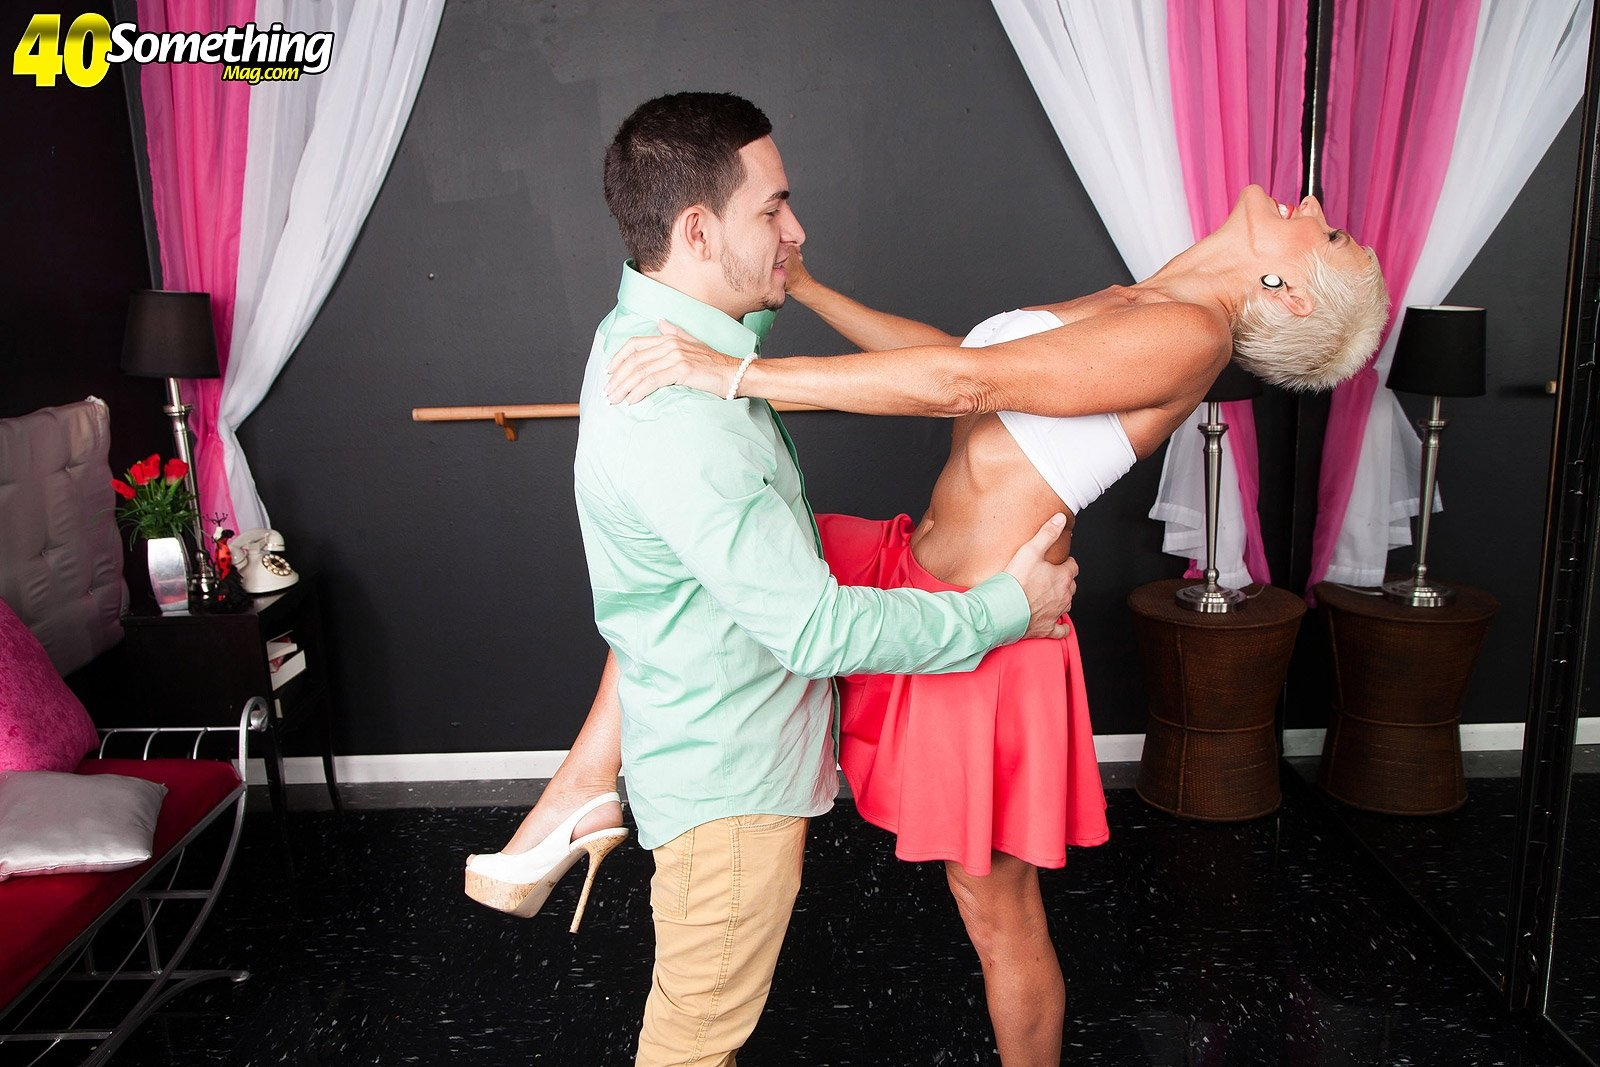 Gang bang swingers pictures